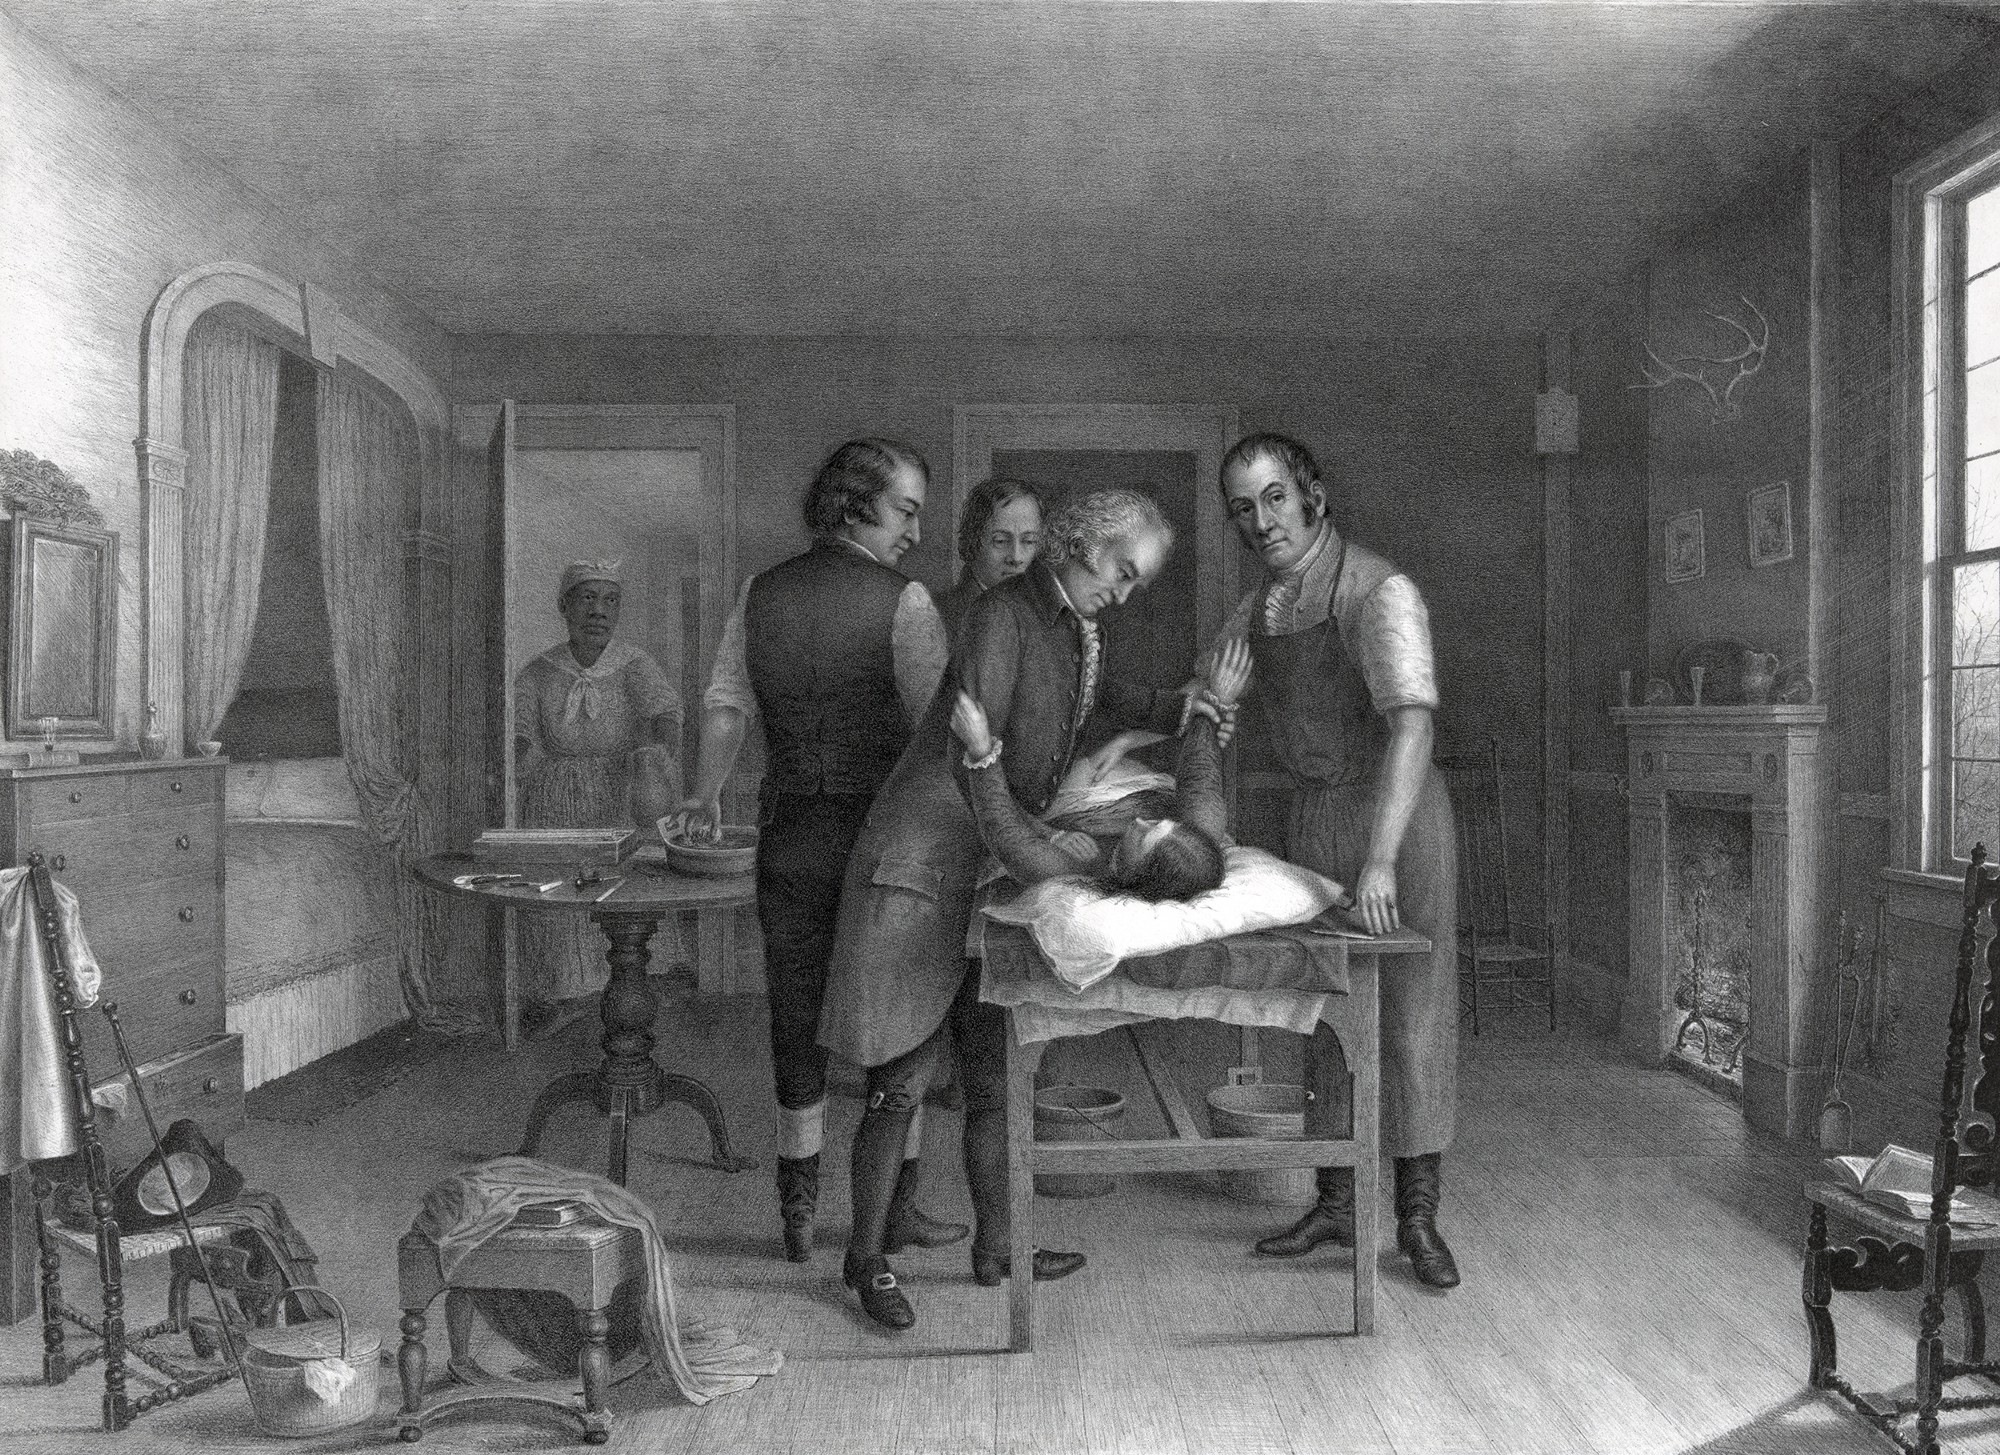 The Father Of American Gynecology Fought To Criminalize